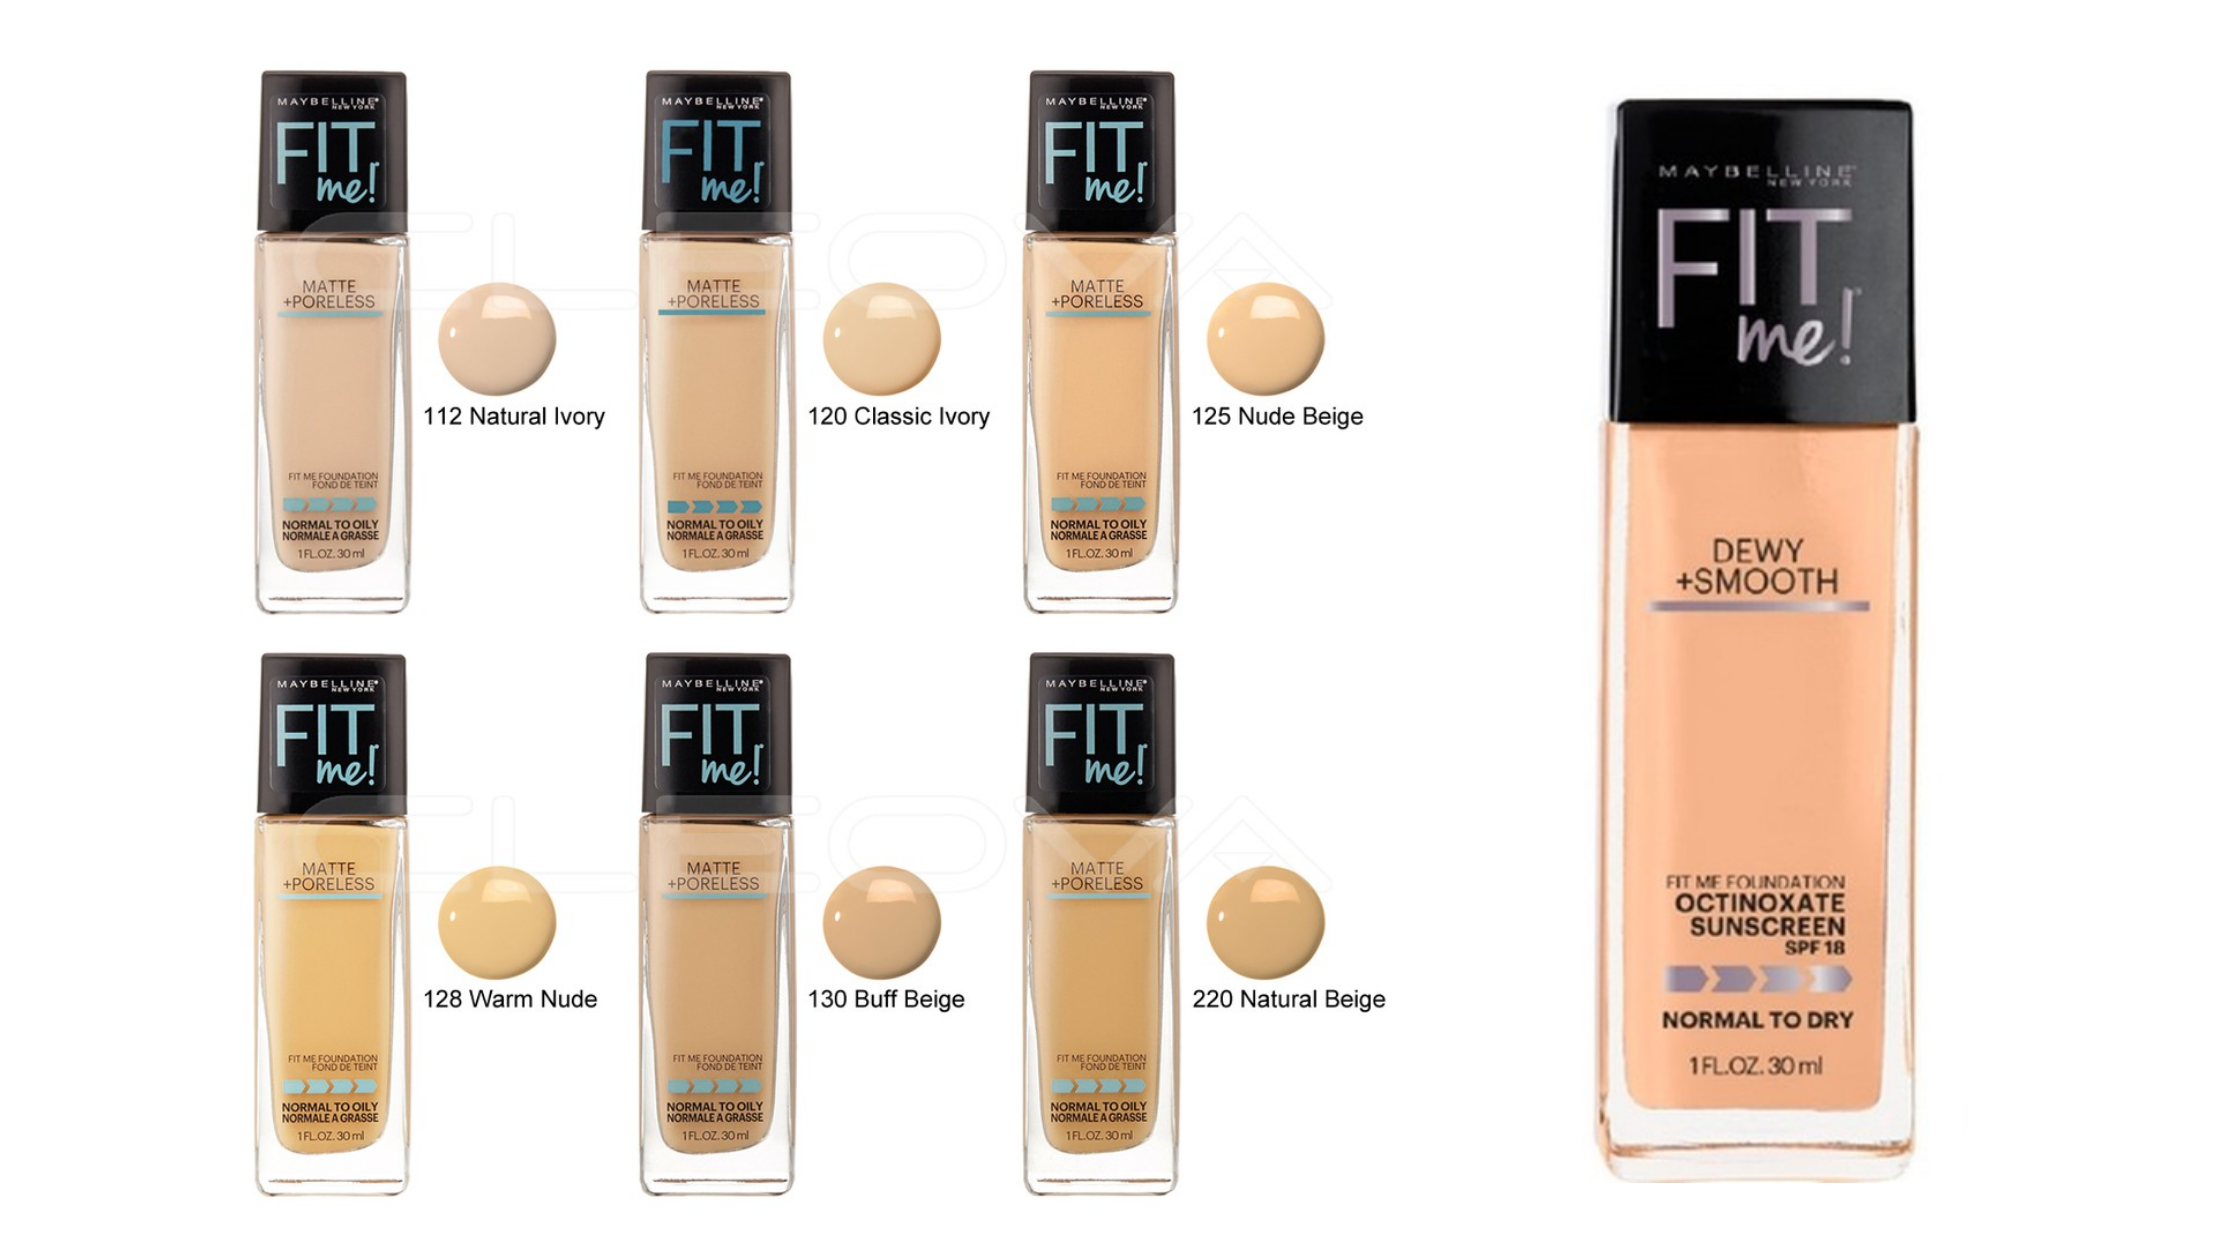 maybelline-fit-me-dewy